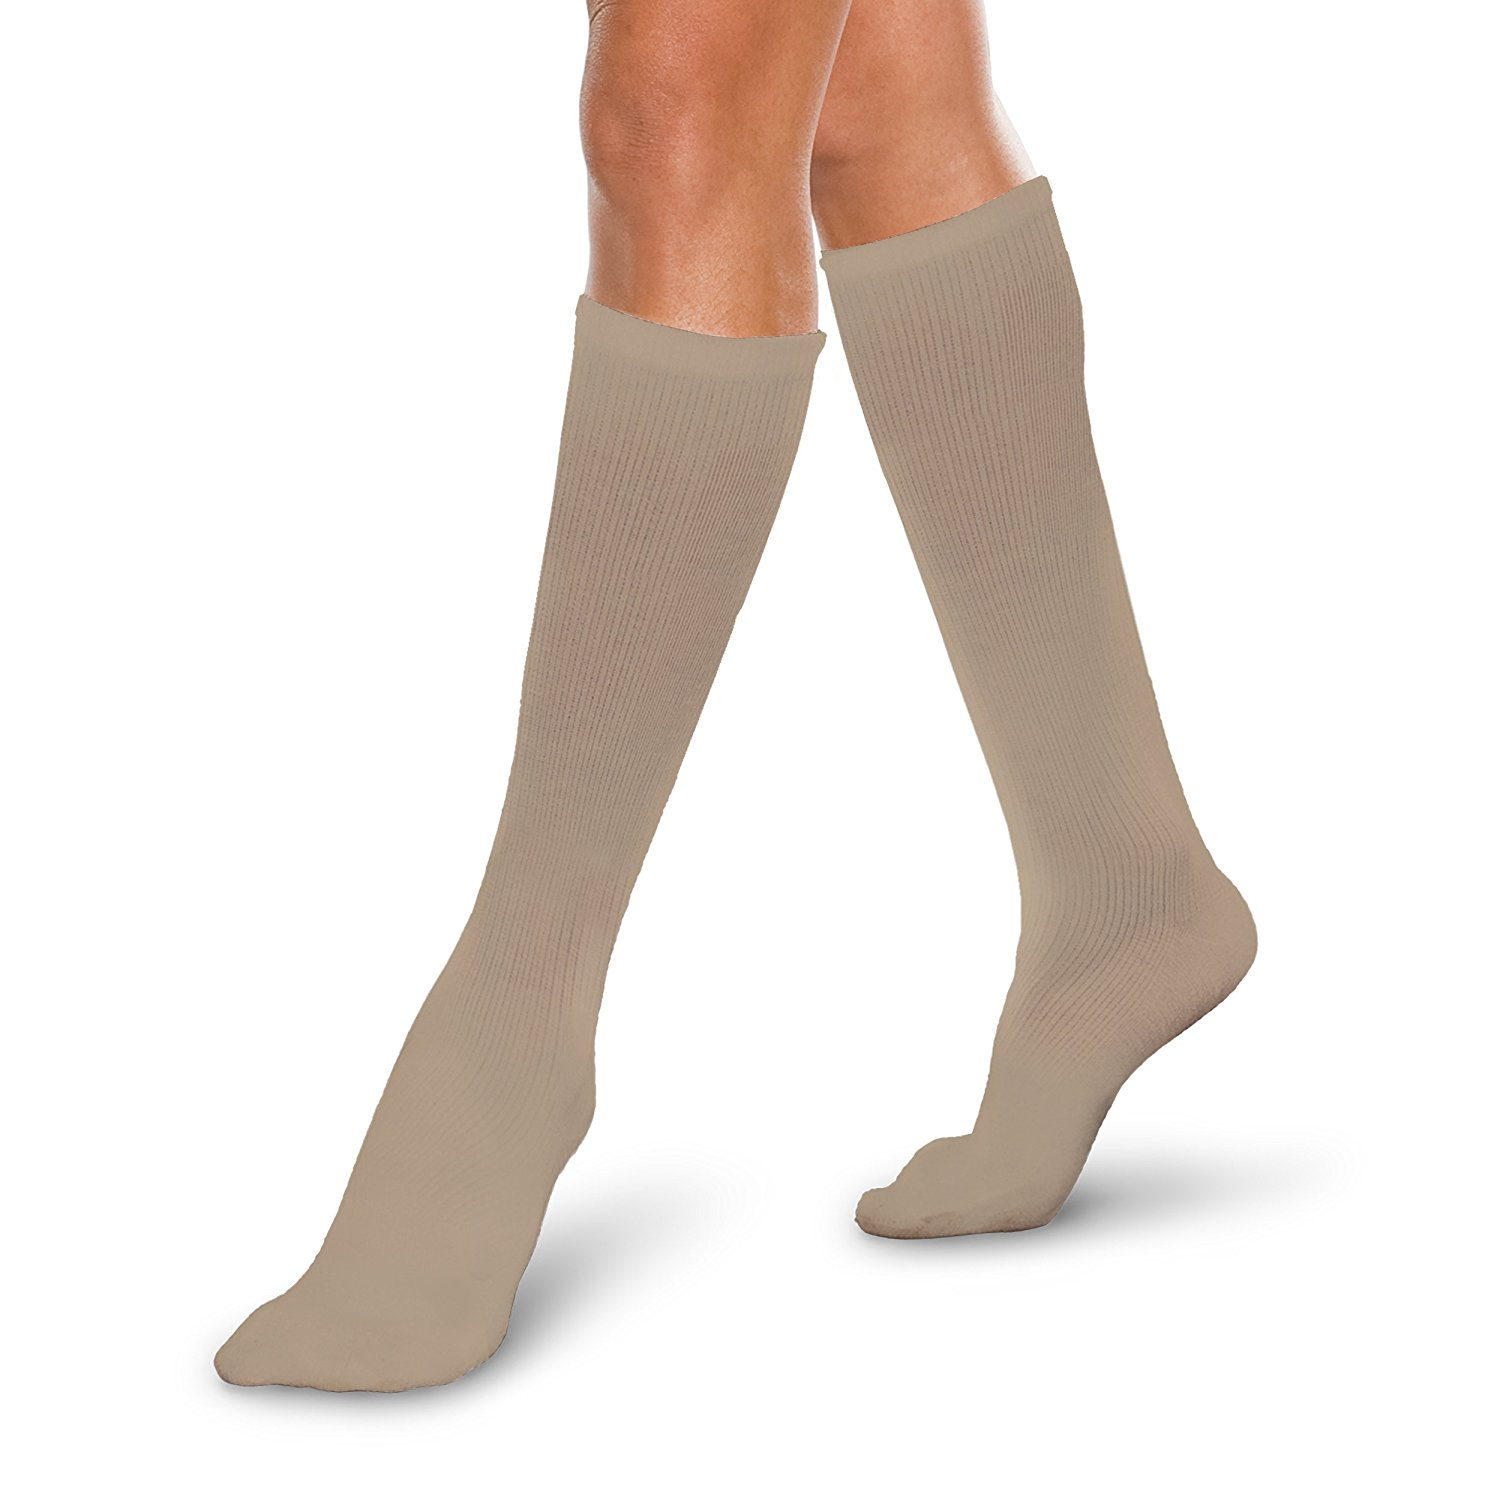 e4ecfcce87f Get Quotations · Therafirm Core-Spun Medical Compression Socks -Therafirm  LIGHT Graduated Knee High FTherafirm LIGHT Compression